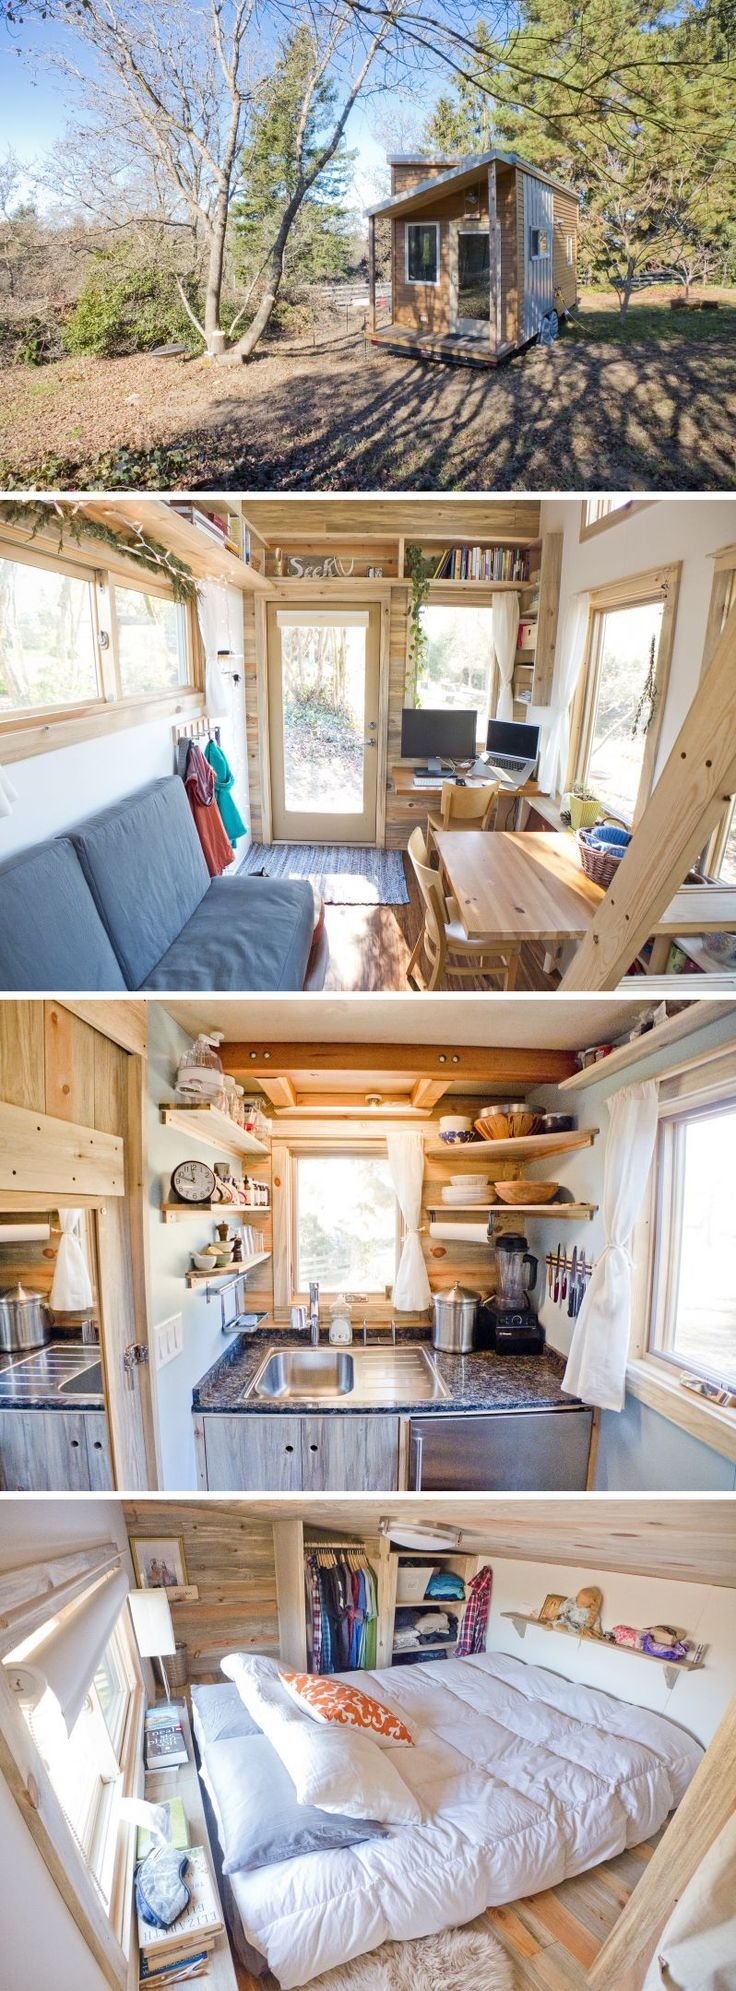 I remember falling in love with the idea of living in a tiny house last Christmas while back in Michigan. I was watching tv with my mom and sister watching whatever was on HGTV when a show about Tiny House's came on. I suddenly became enthralled with this small house on wheels. I became swept up in the romantic idea of moving wherever you wanted with your home right behind your truck. Boston one day, Cali the next? Done. We continued to watch the show and I loved the idea of living wit...